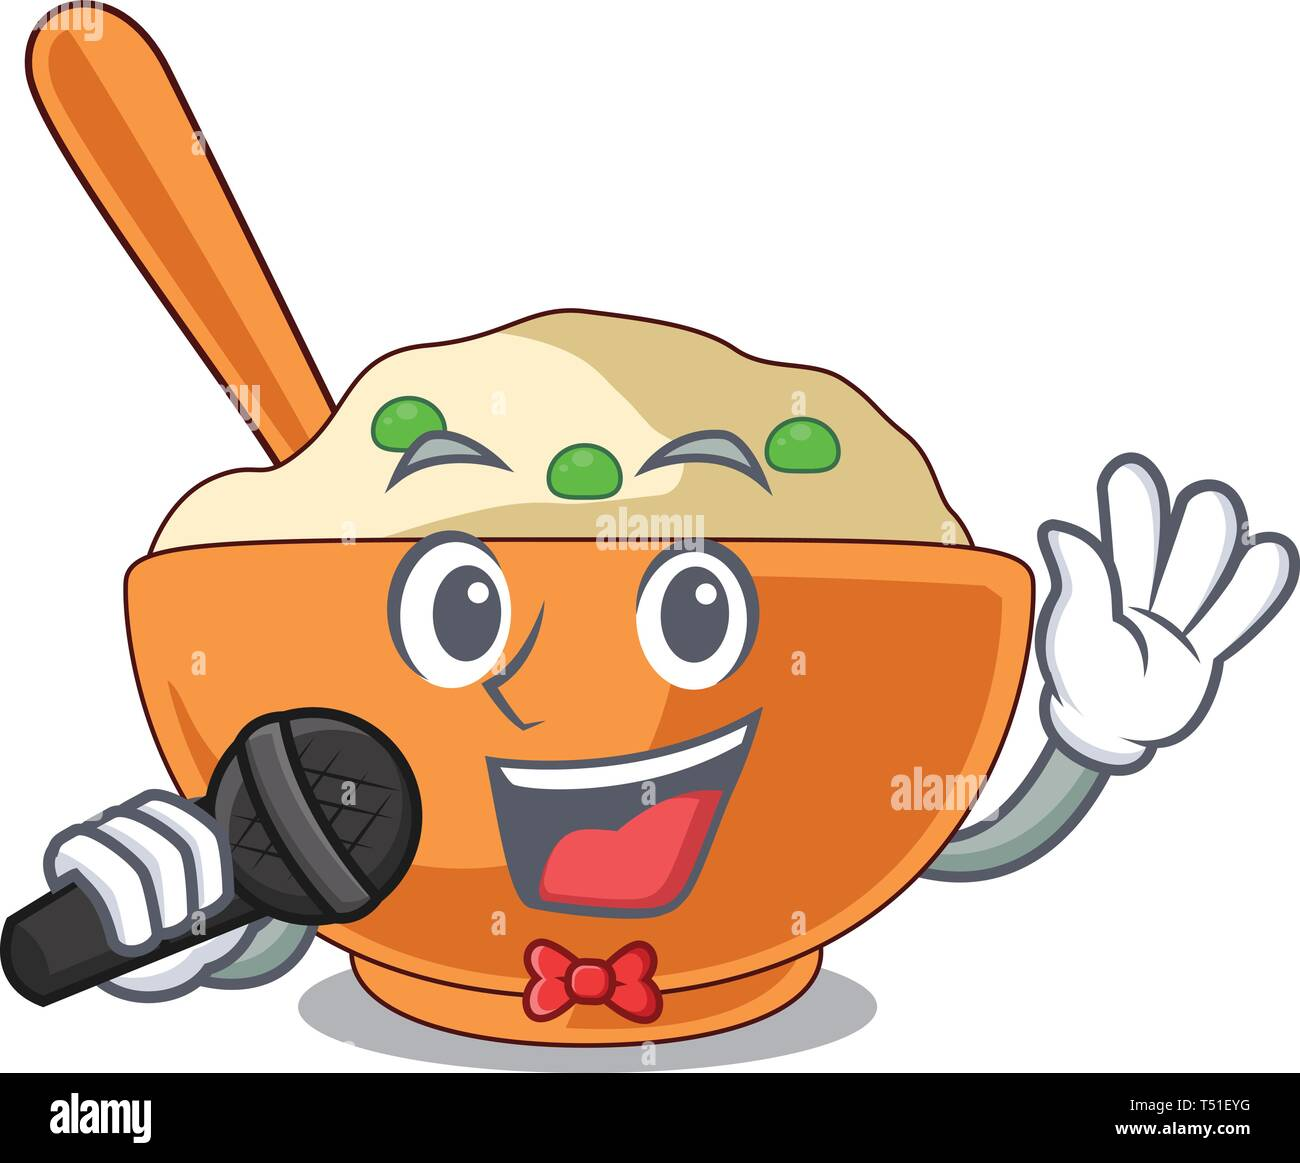 Singing mashed potato in the shape mascot - Stock Vector